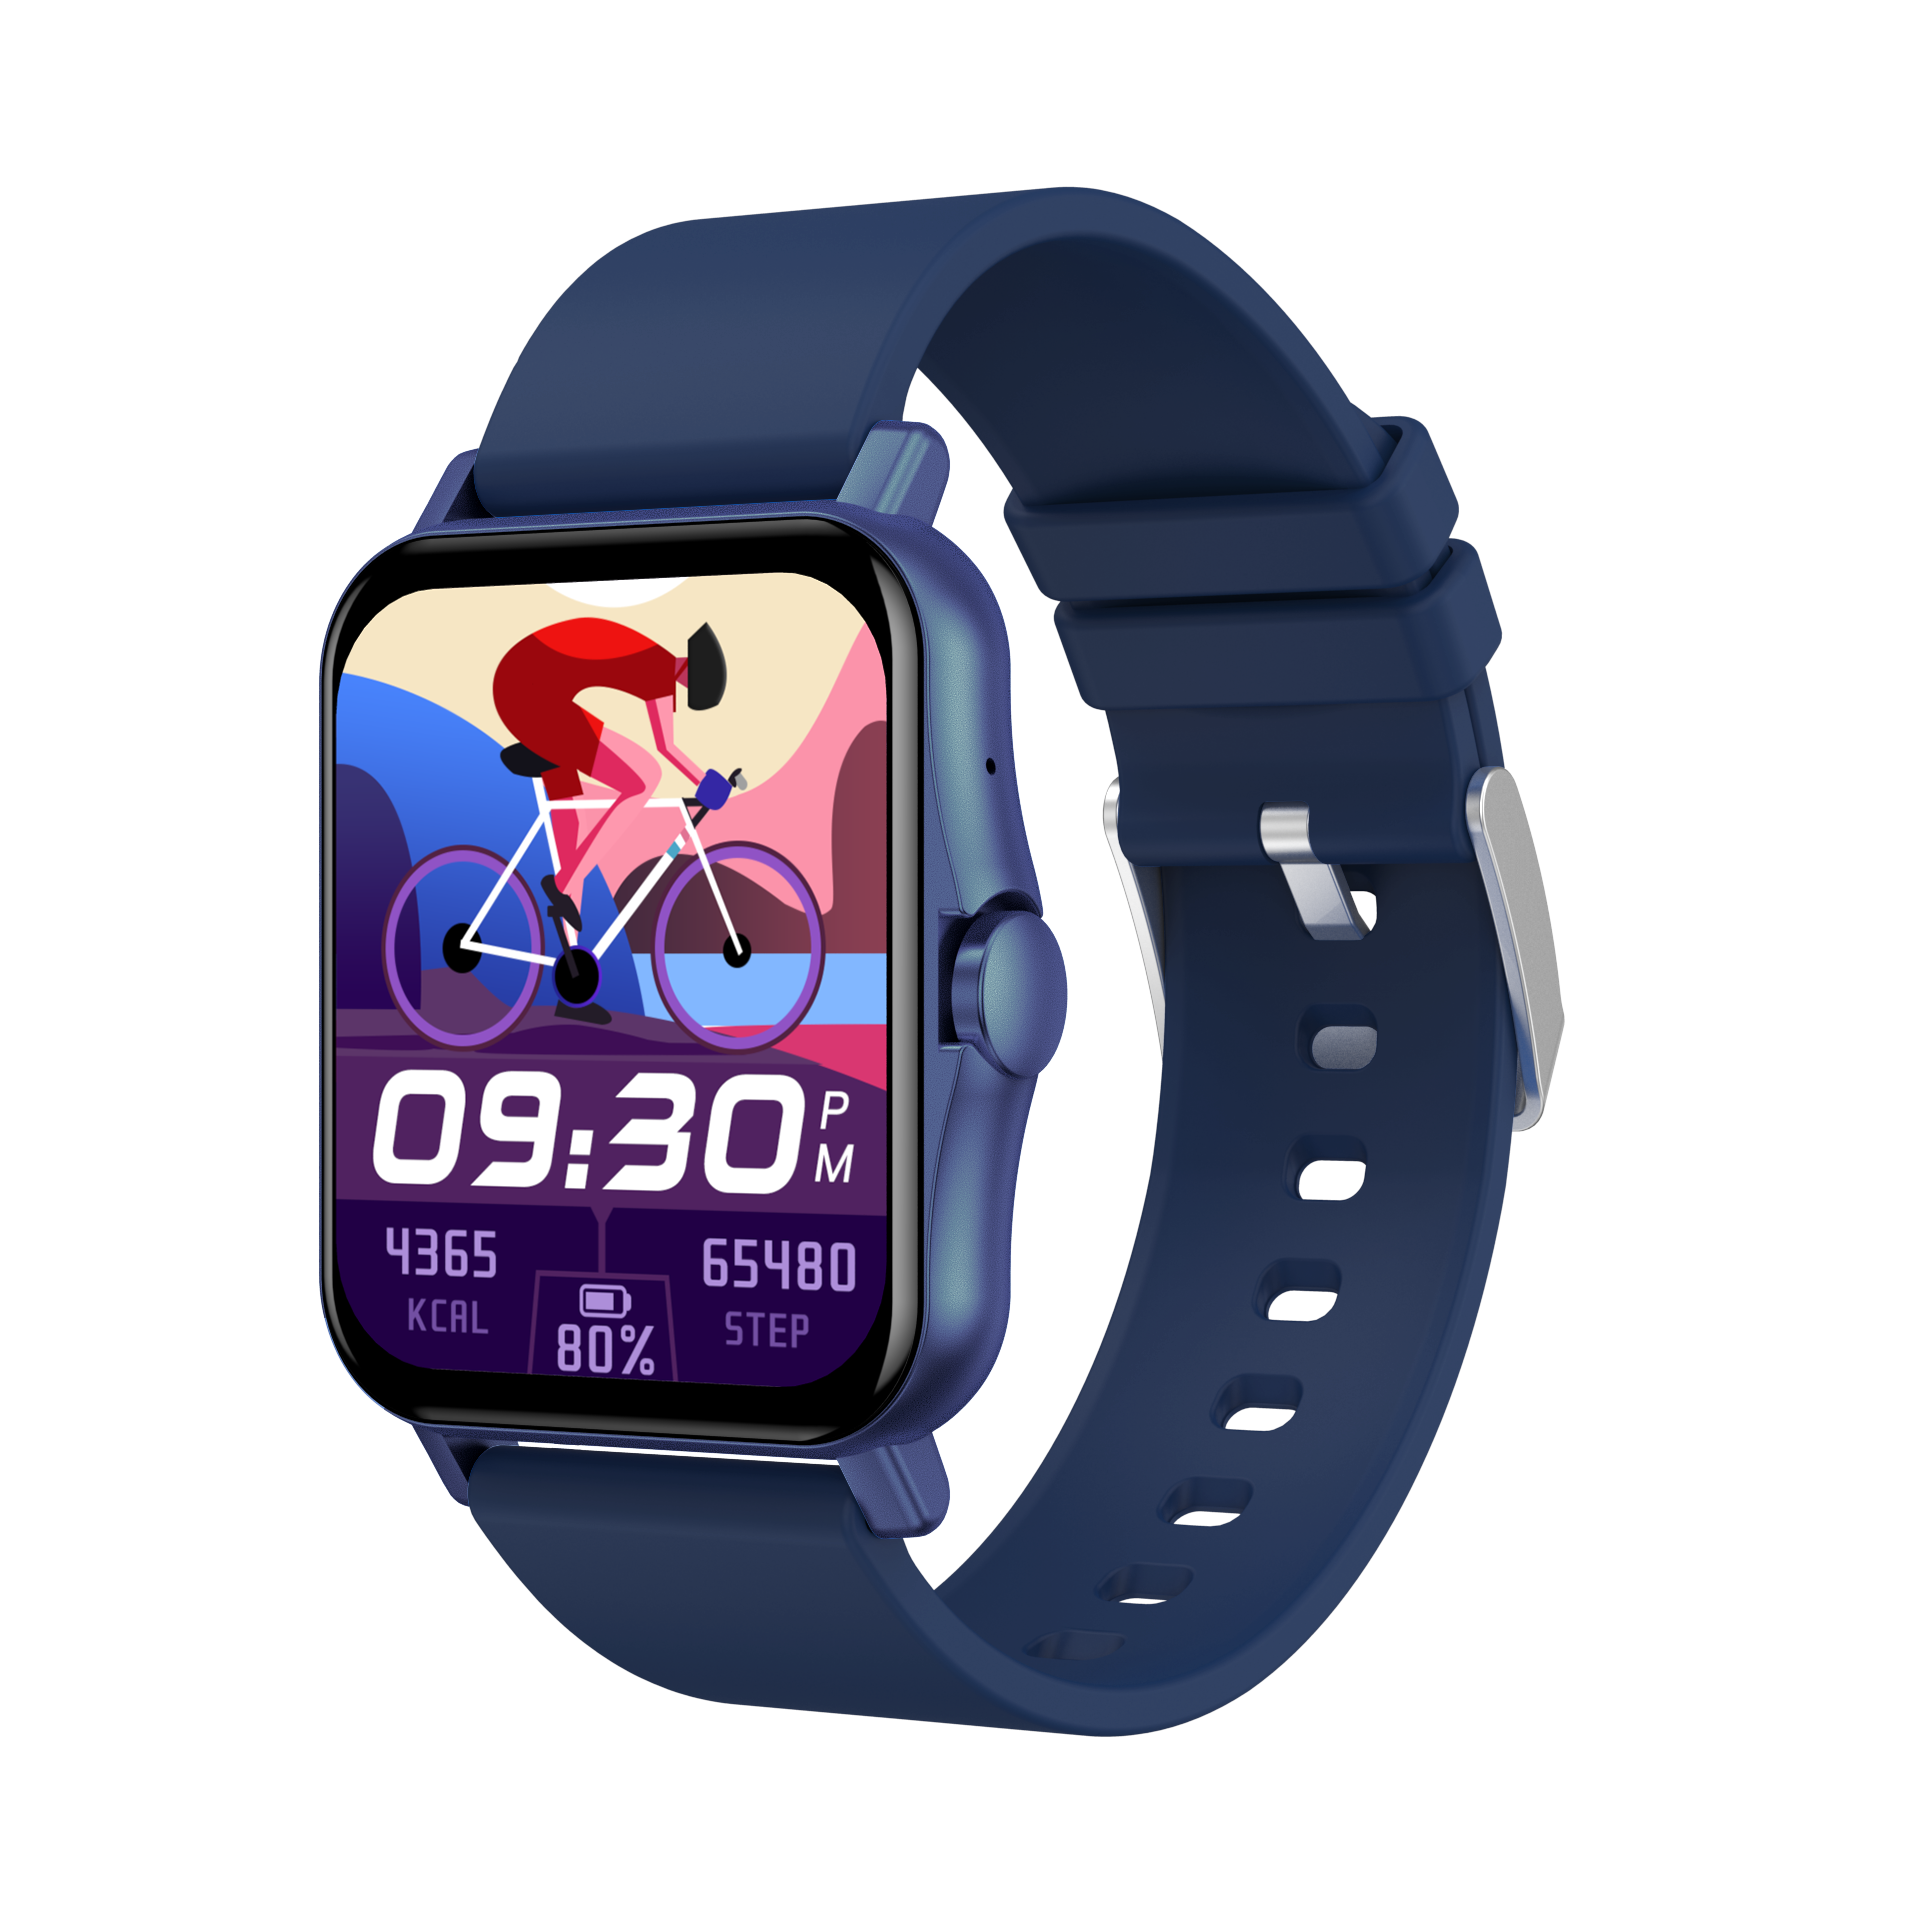 New ZW23 Large-Screen Multi-Function Smart Watch Wor Men And Women, Bluetooth 4.0 Can be connected t